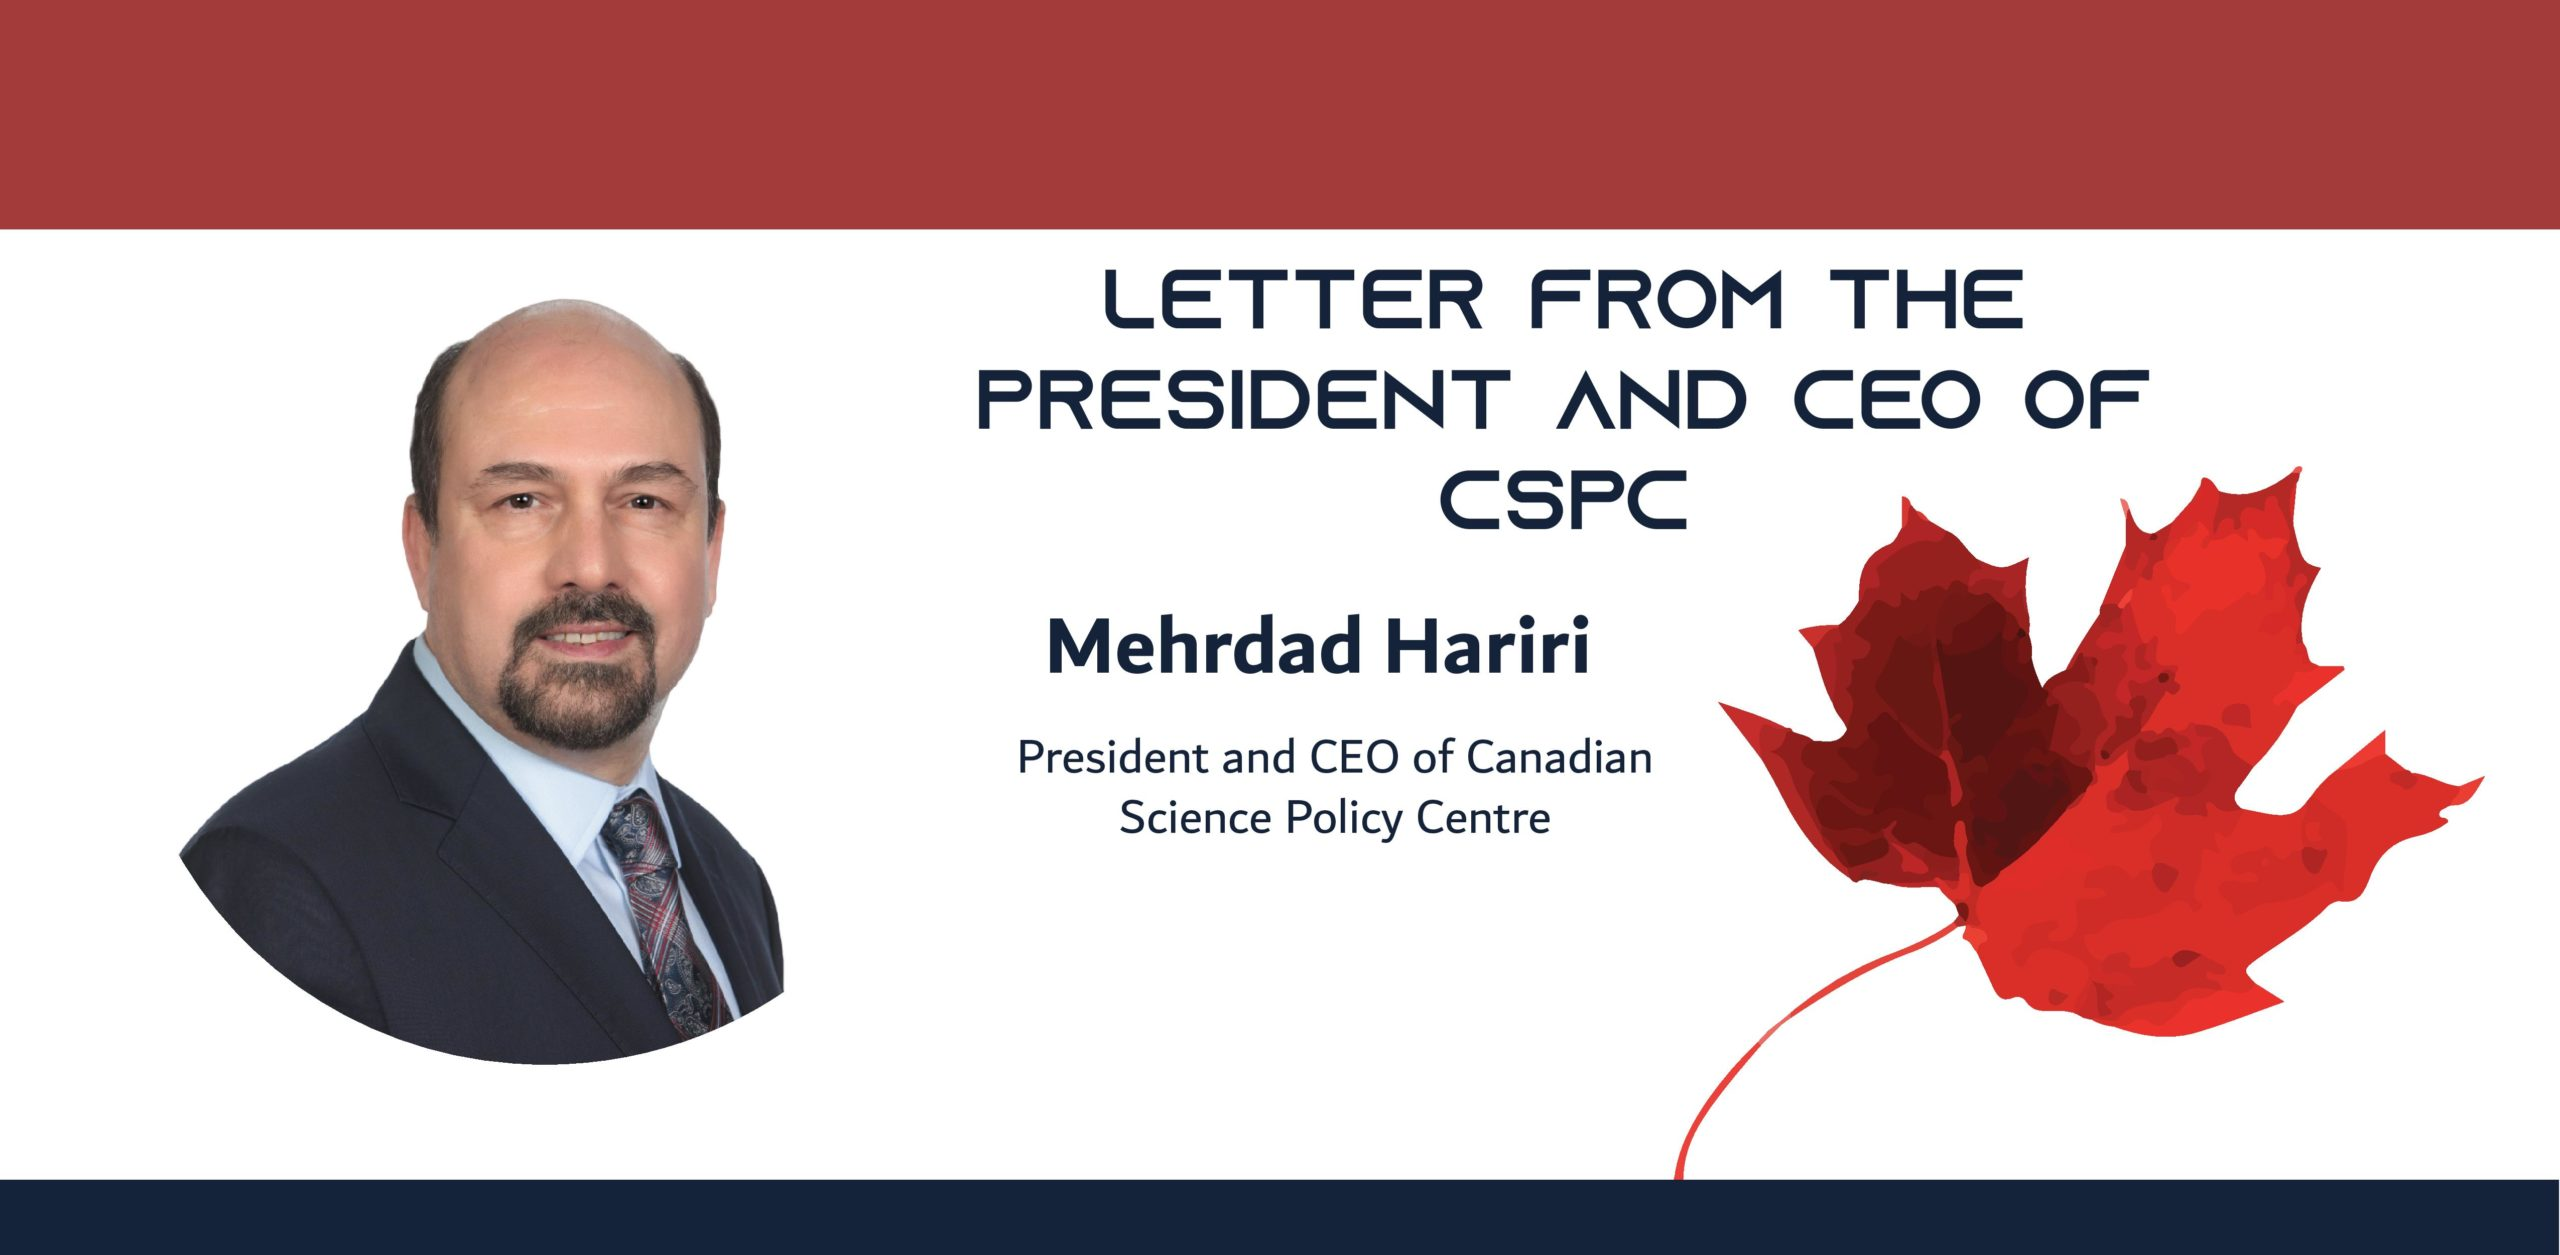 """Headshot of a man in a suit with the text """"Letter from the President and CEO of CSPC, Mehrdad Hariri, President and CEO of the Canadian Science Policy Center"""" followed by a maple leaf."""